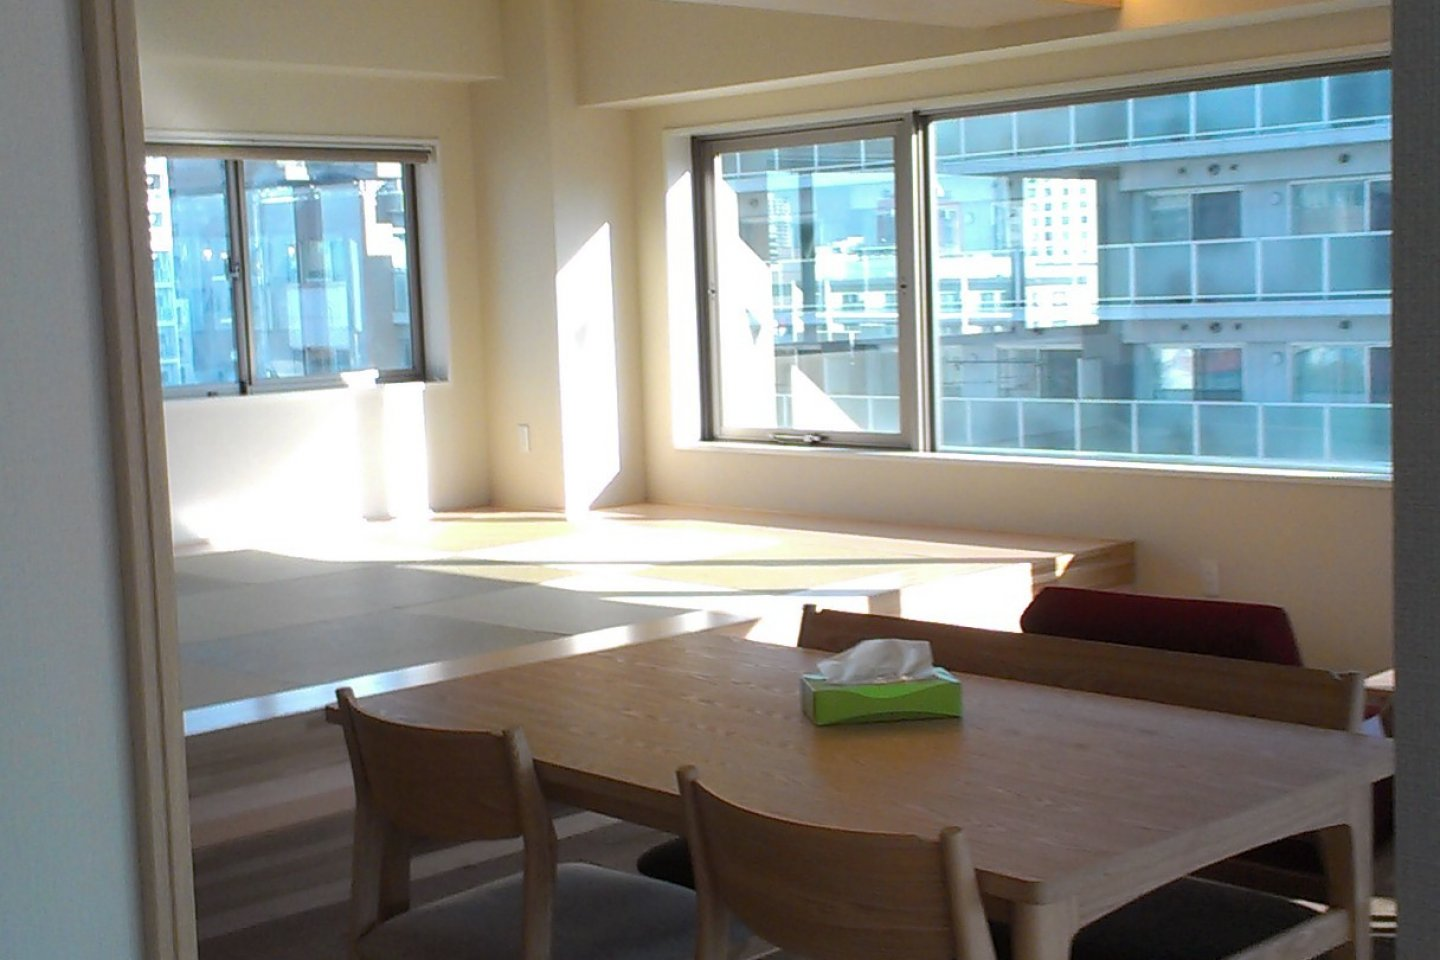 10th floor dining area